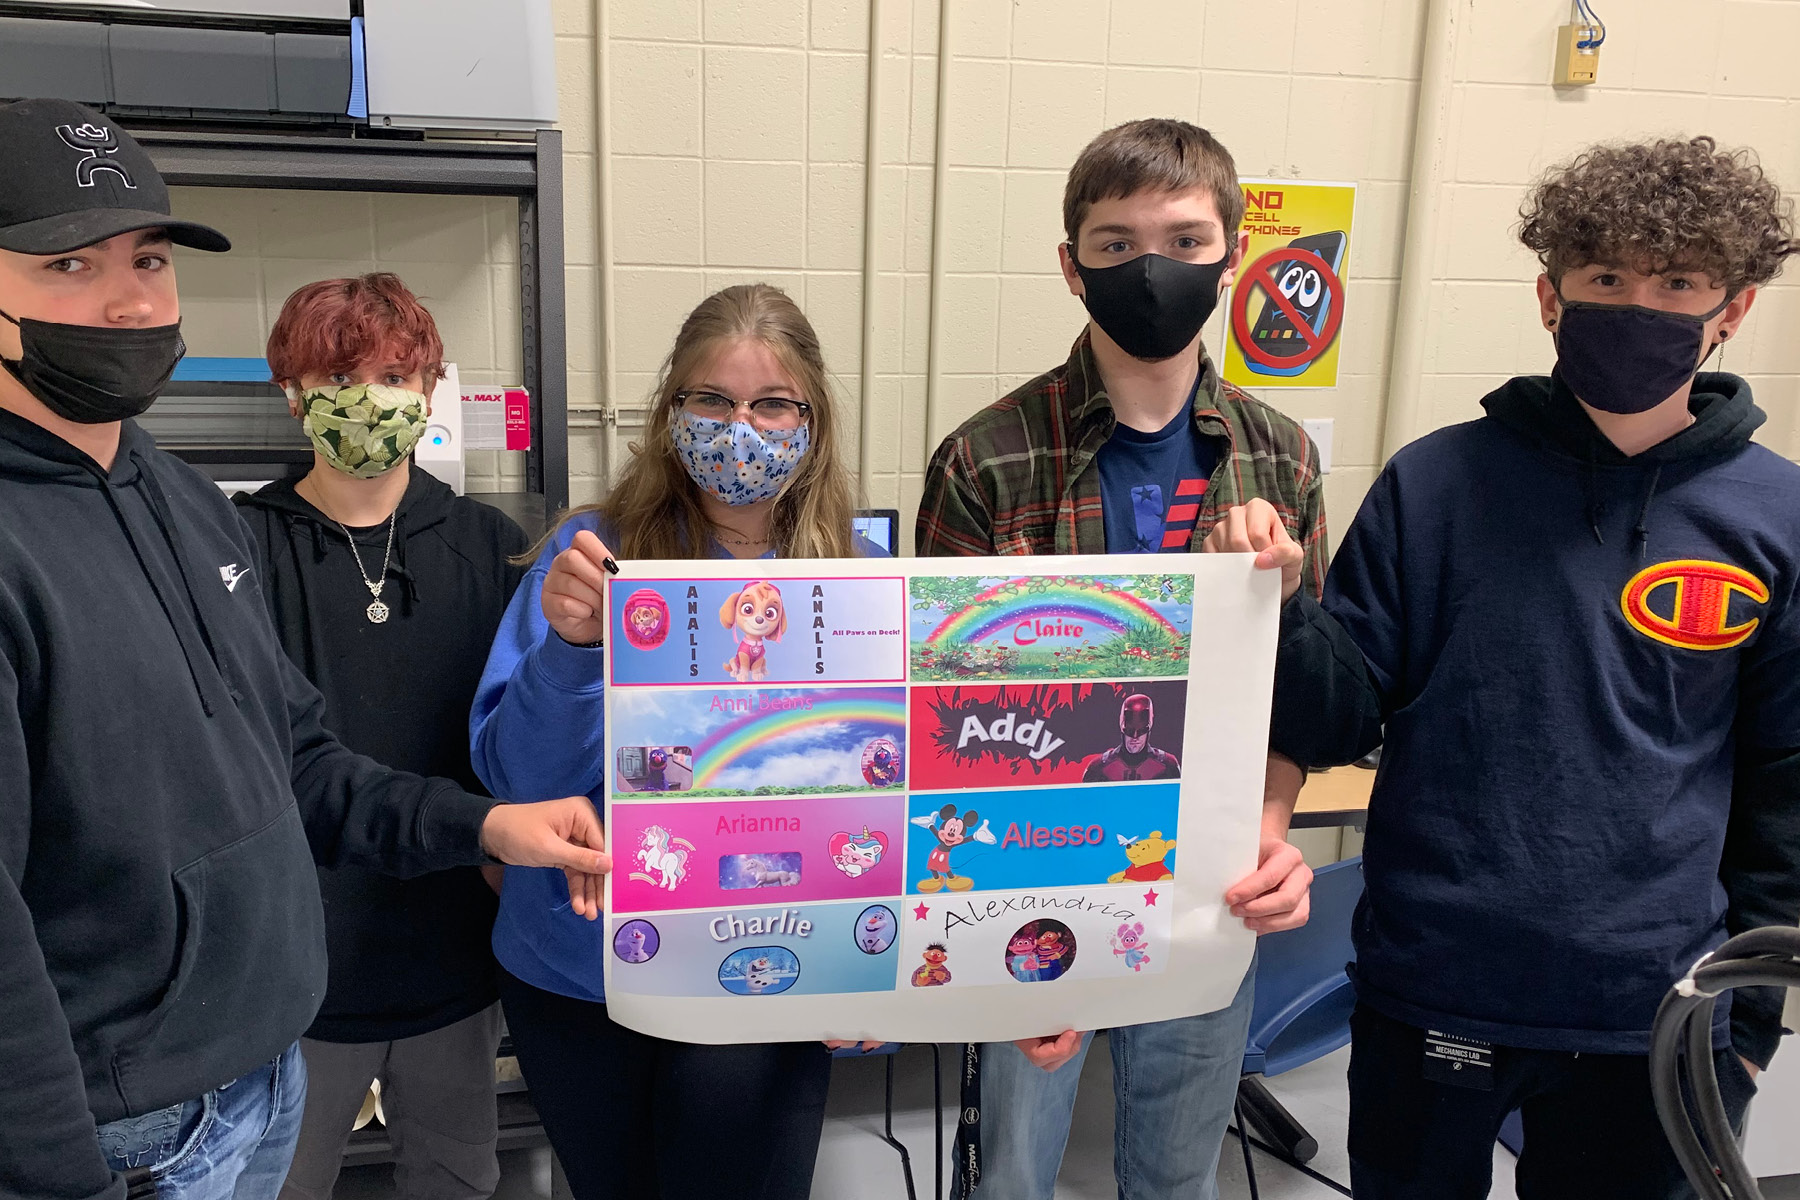 students show finalized license plates